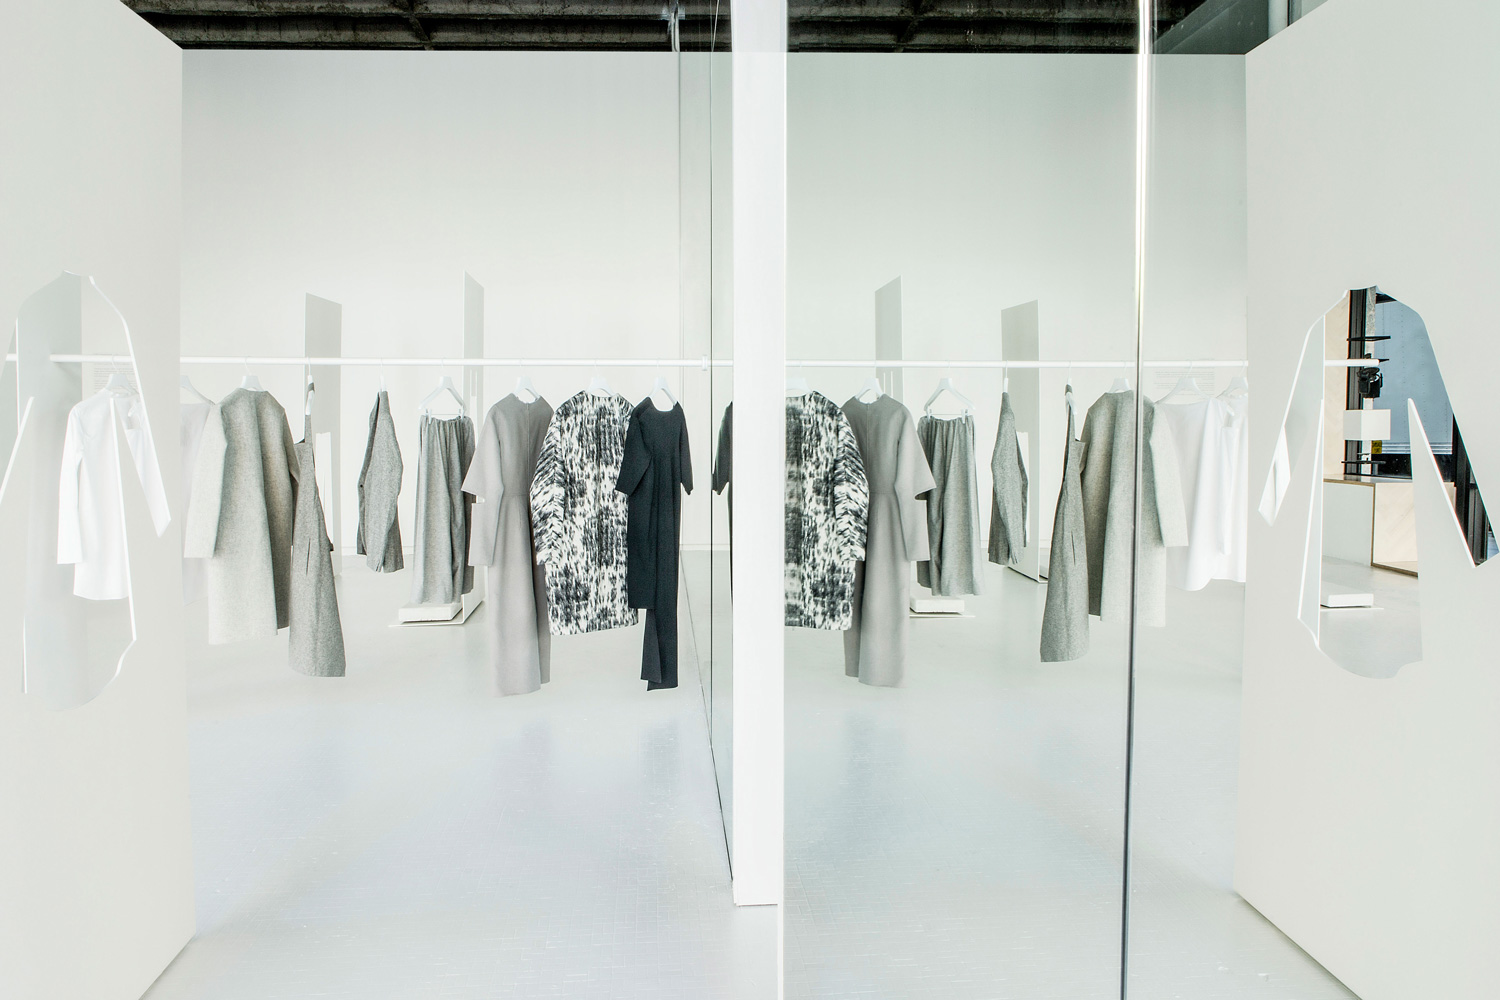 COS X Snarkitecture Pop up Collaboration at Austere | Yellowtrace